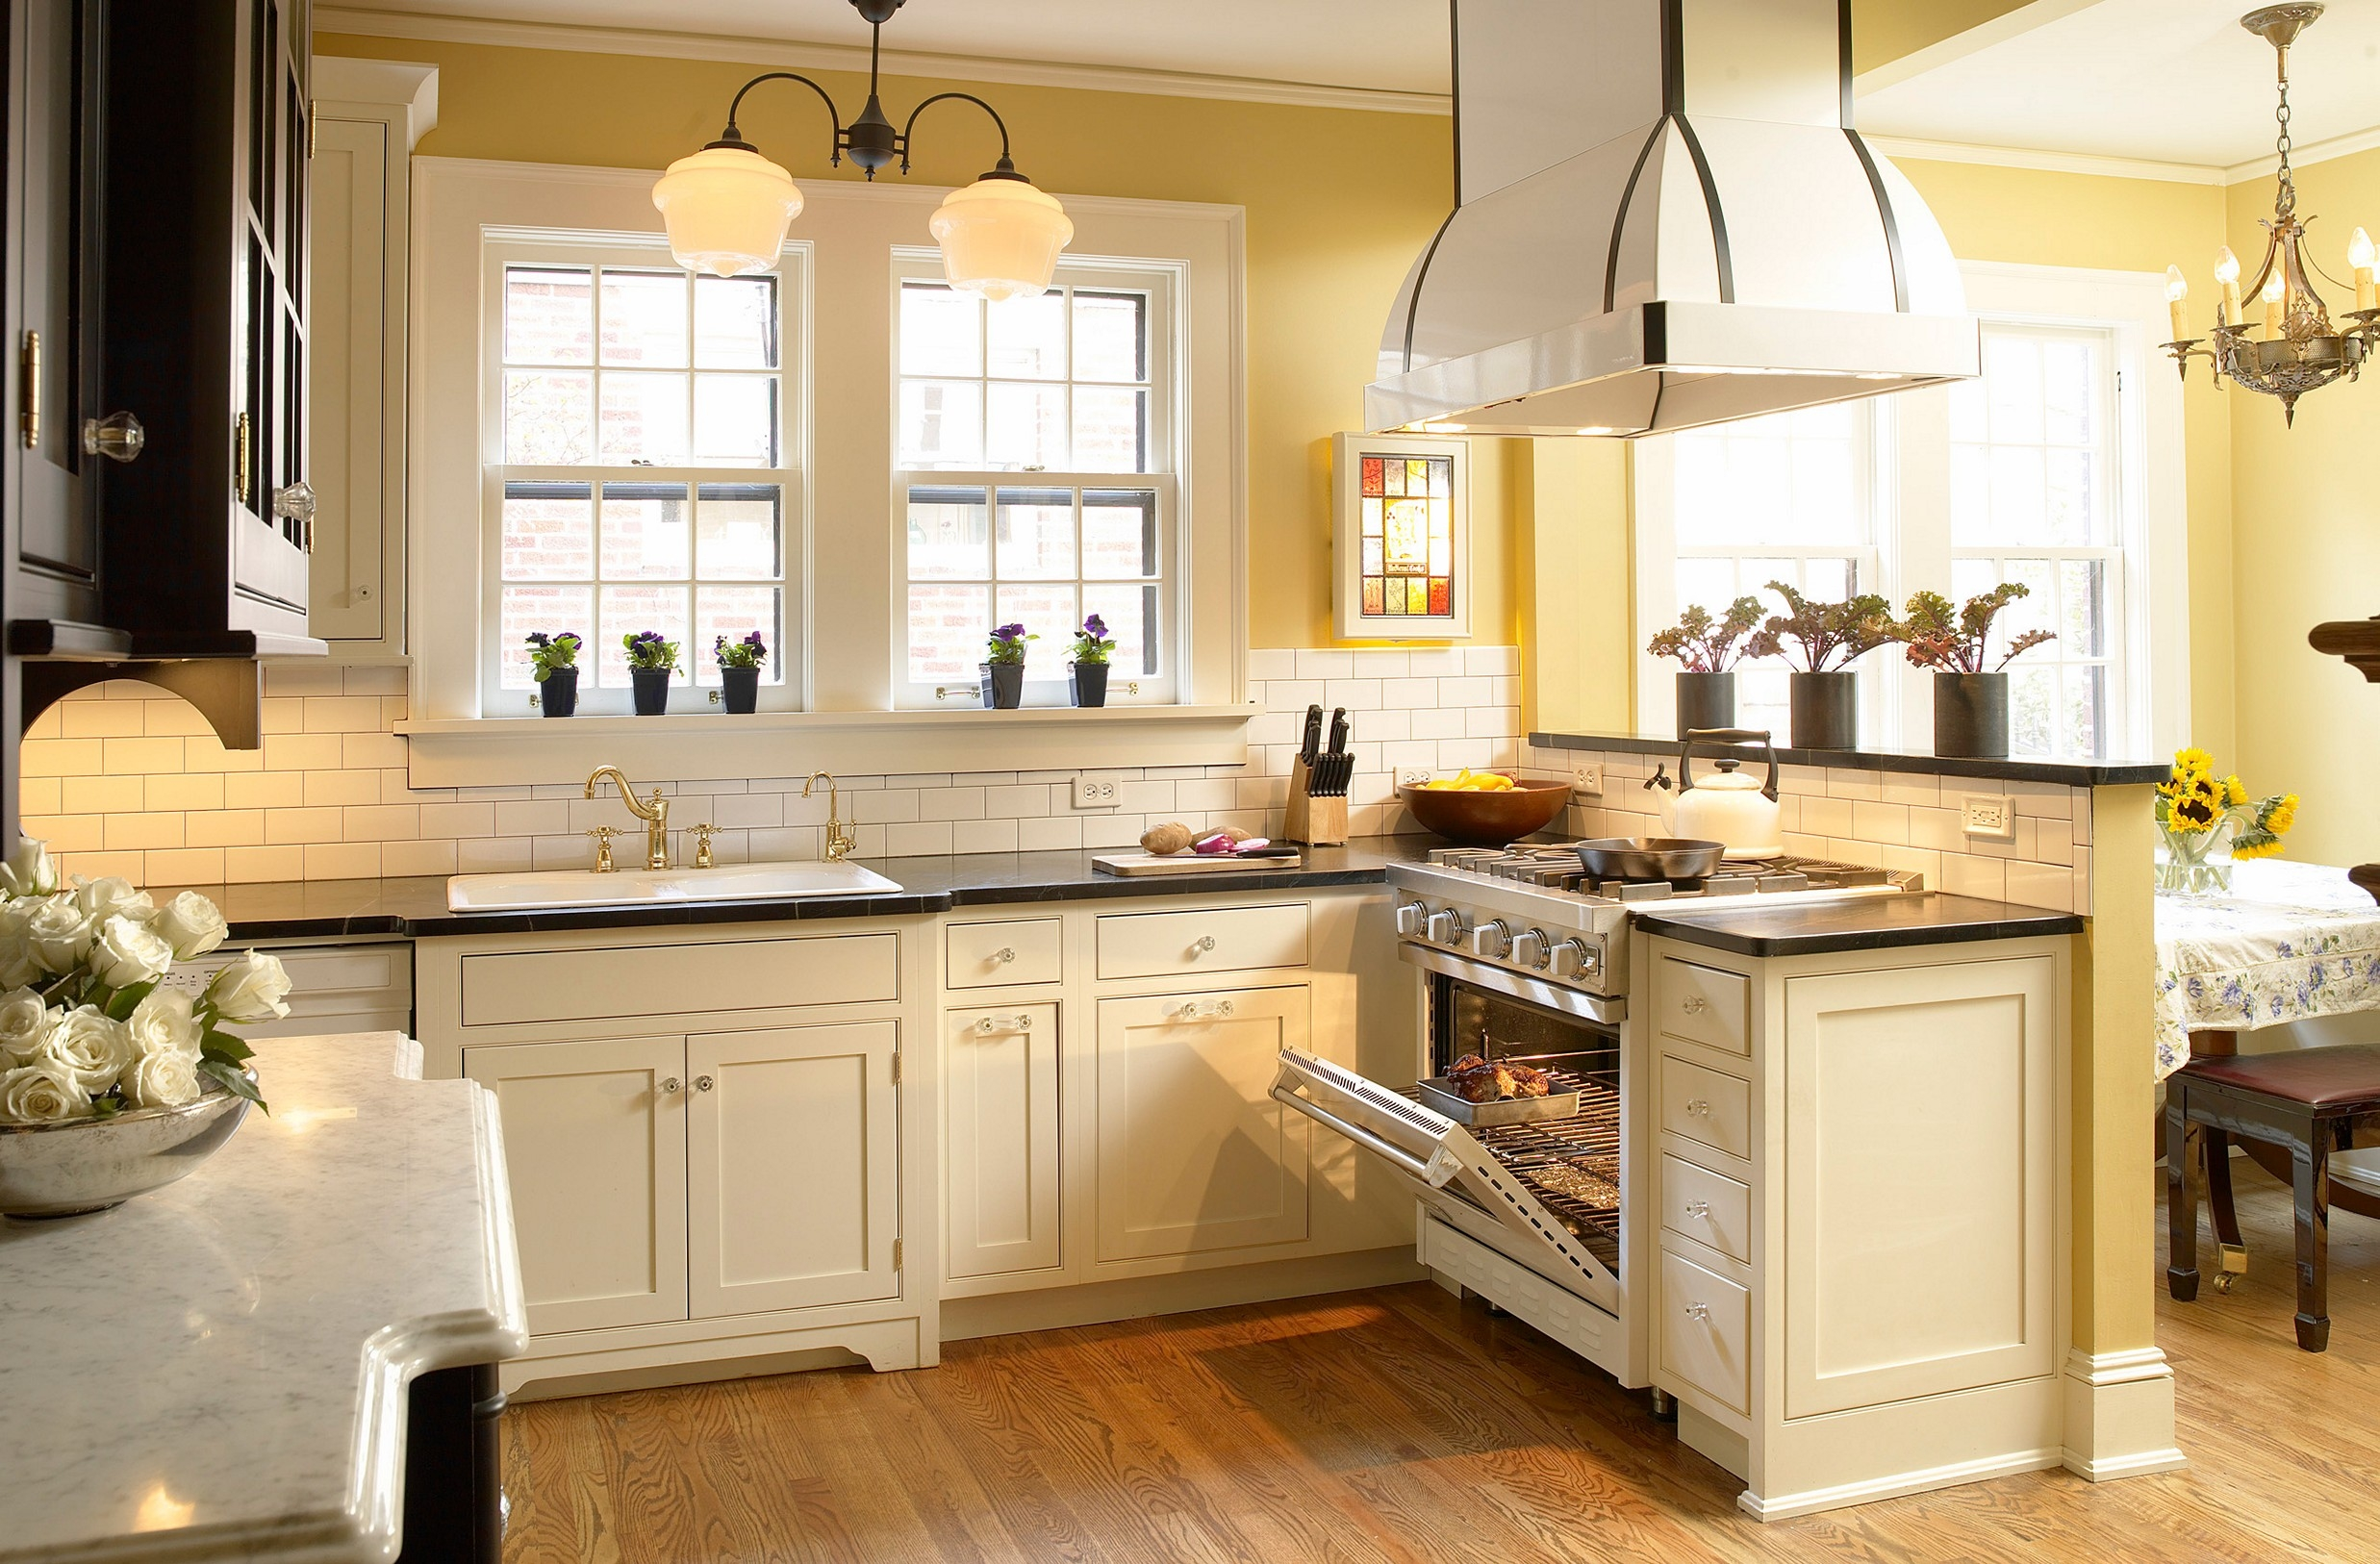 Cream Colored Kitchen Cabinets With Dark Countertops